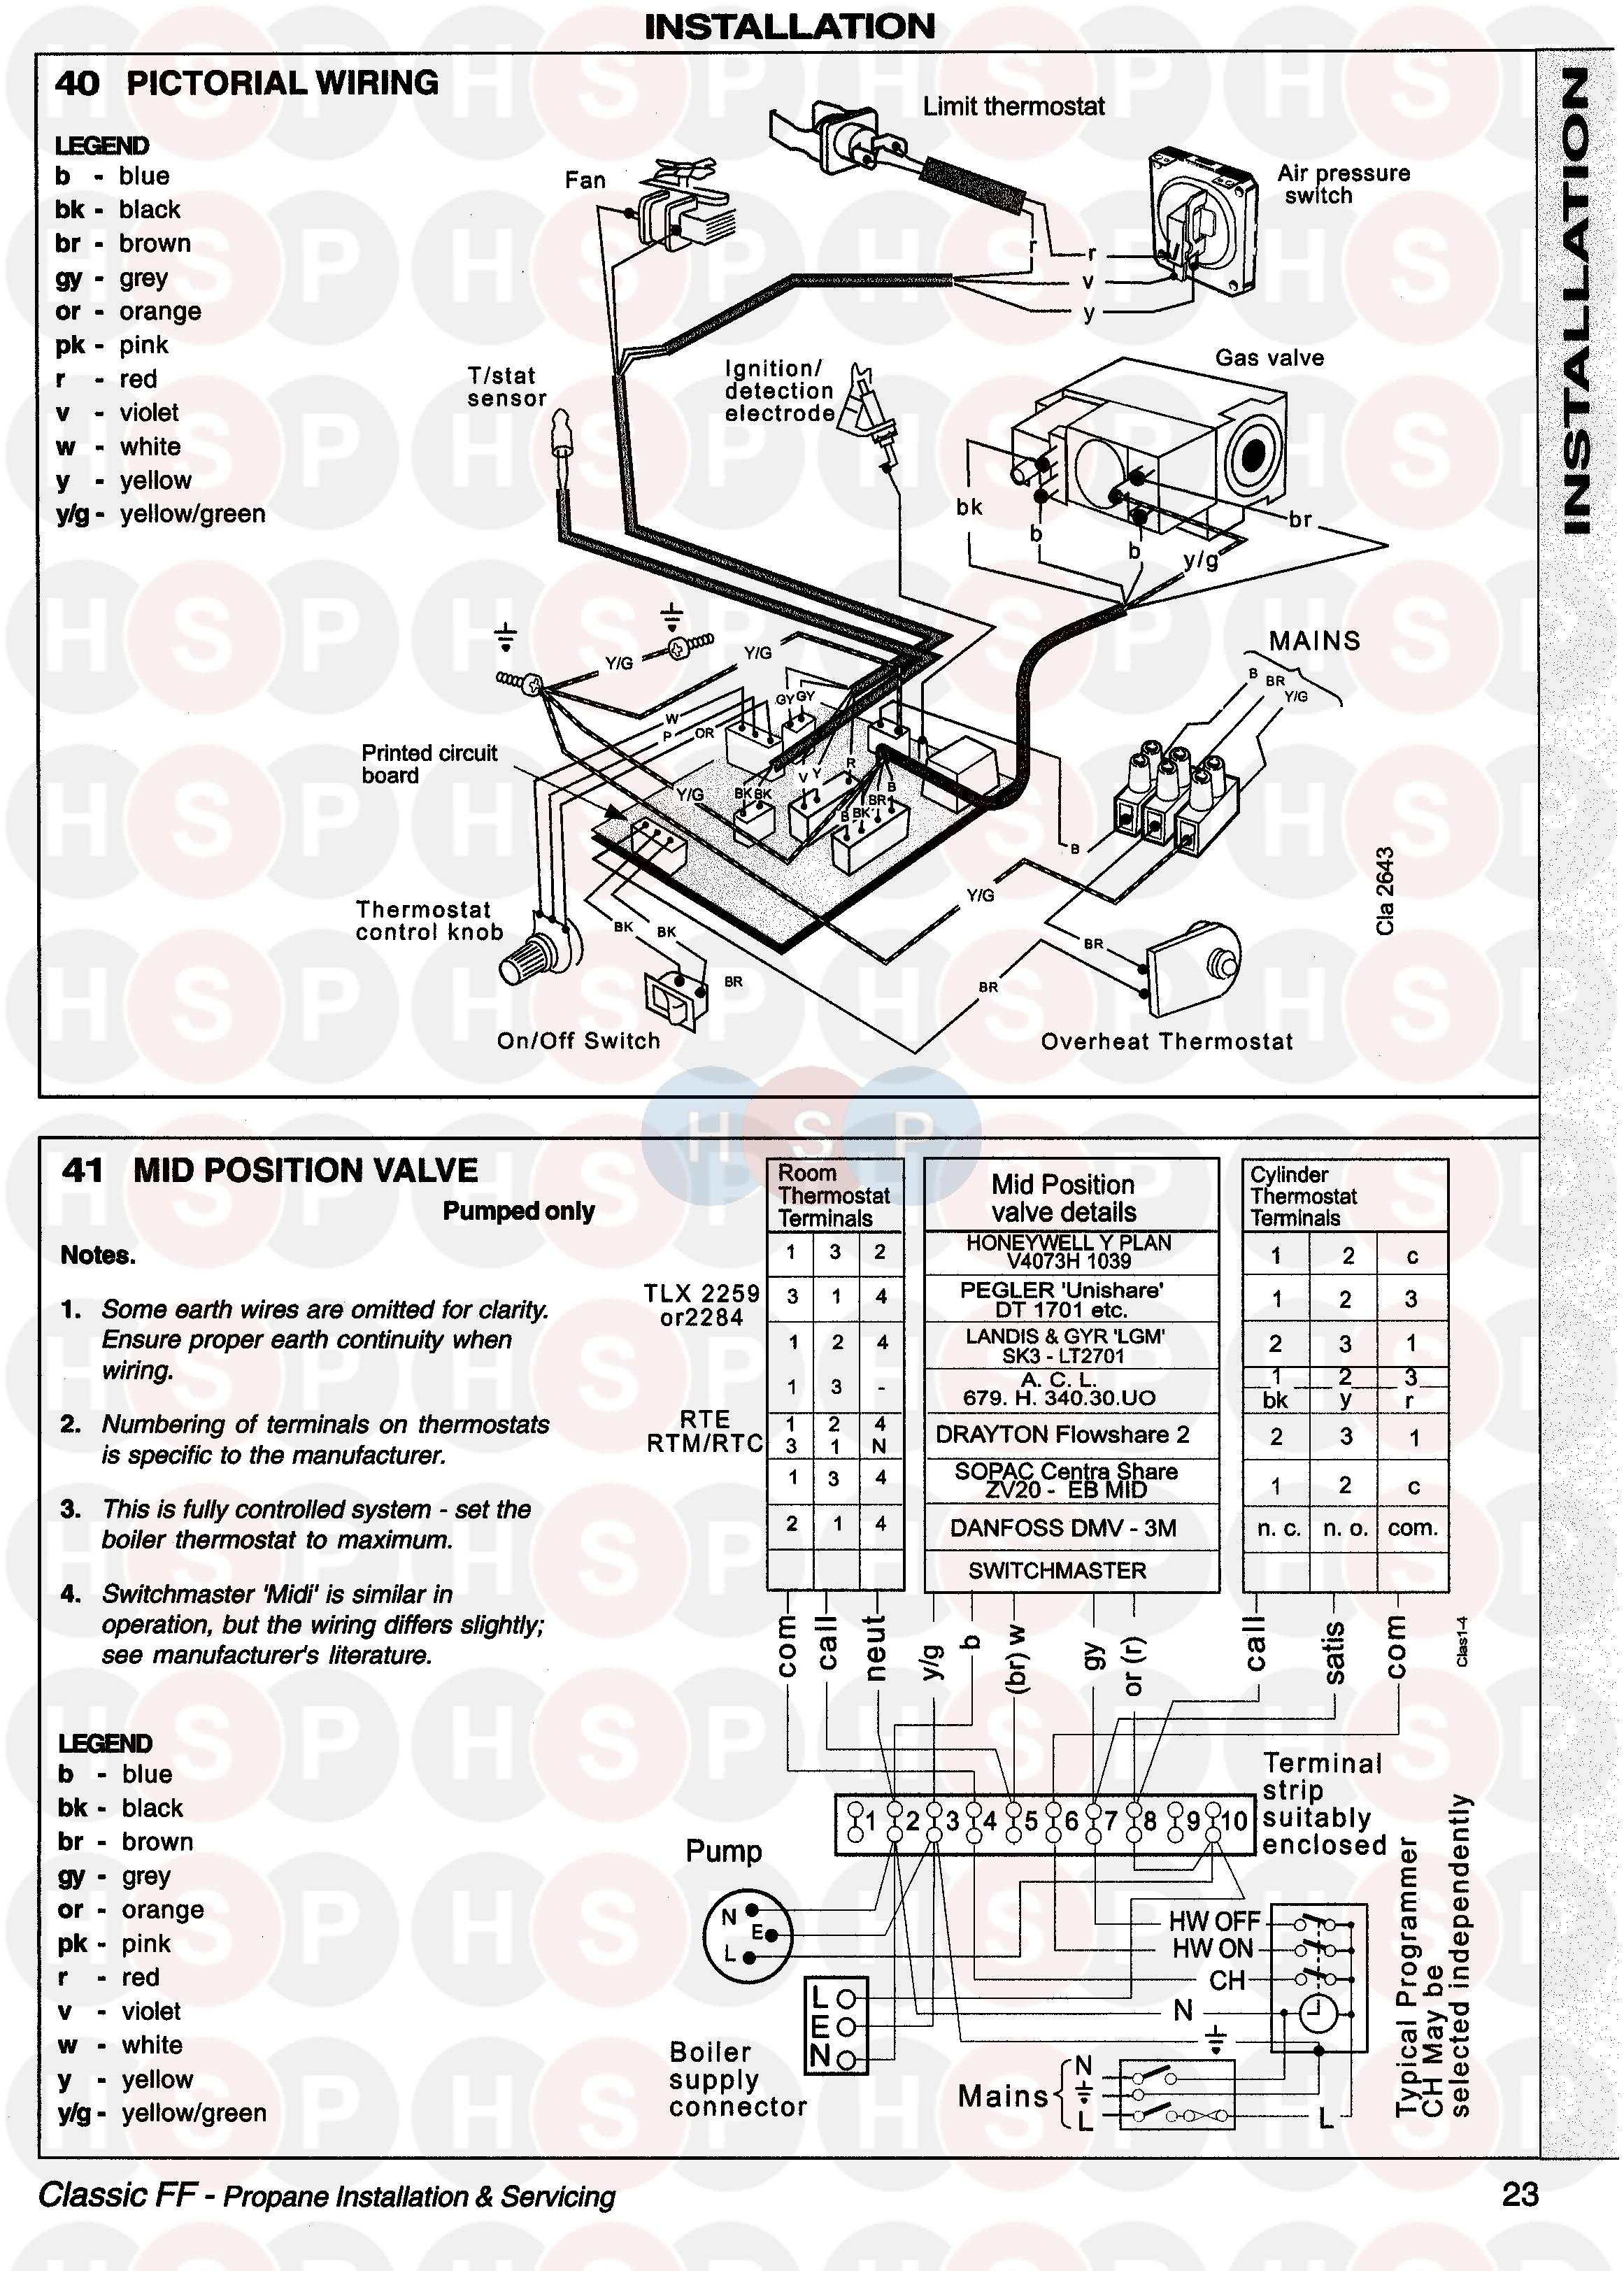 Ideal CLASSIC SLIMLINE FF 330 (Wiring 2) Diagram | Heating Spare Parts